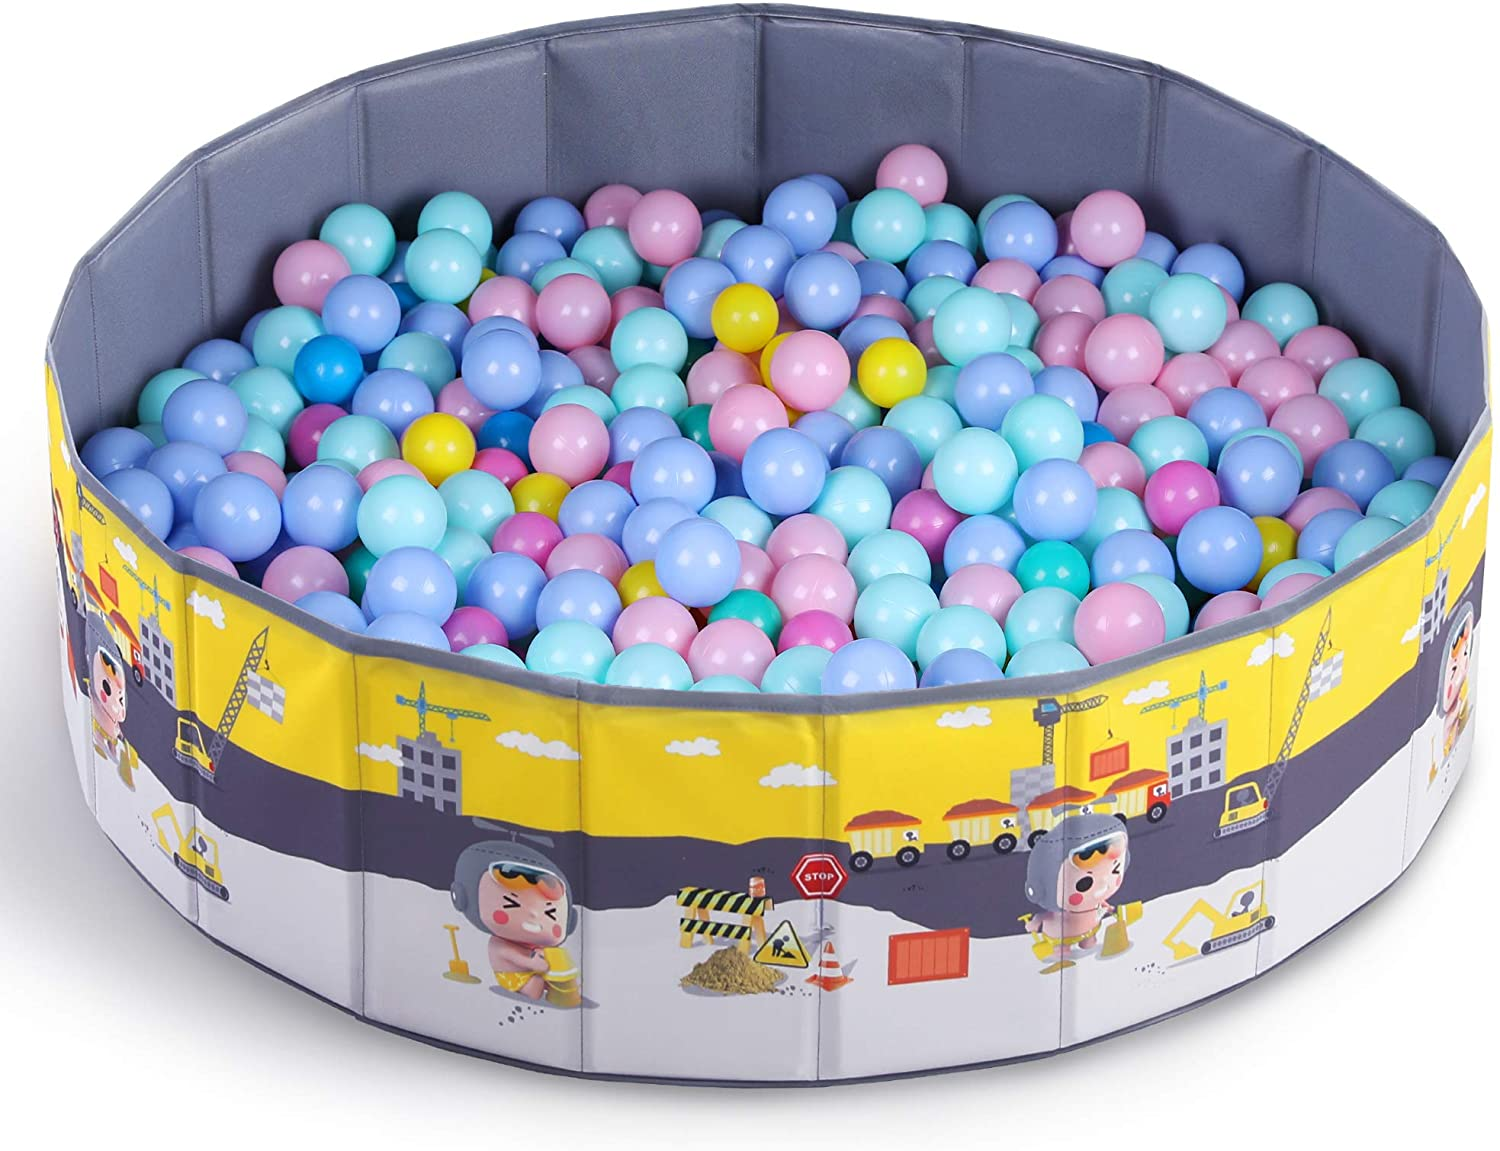 Pool with 500 ball pit 47 inches in diameter and 18 inches in height.